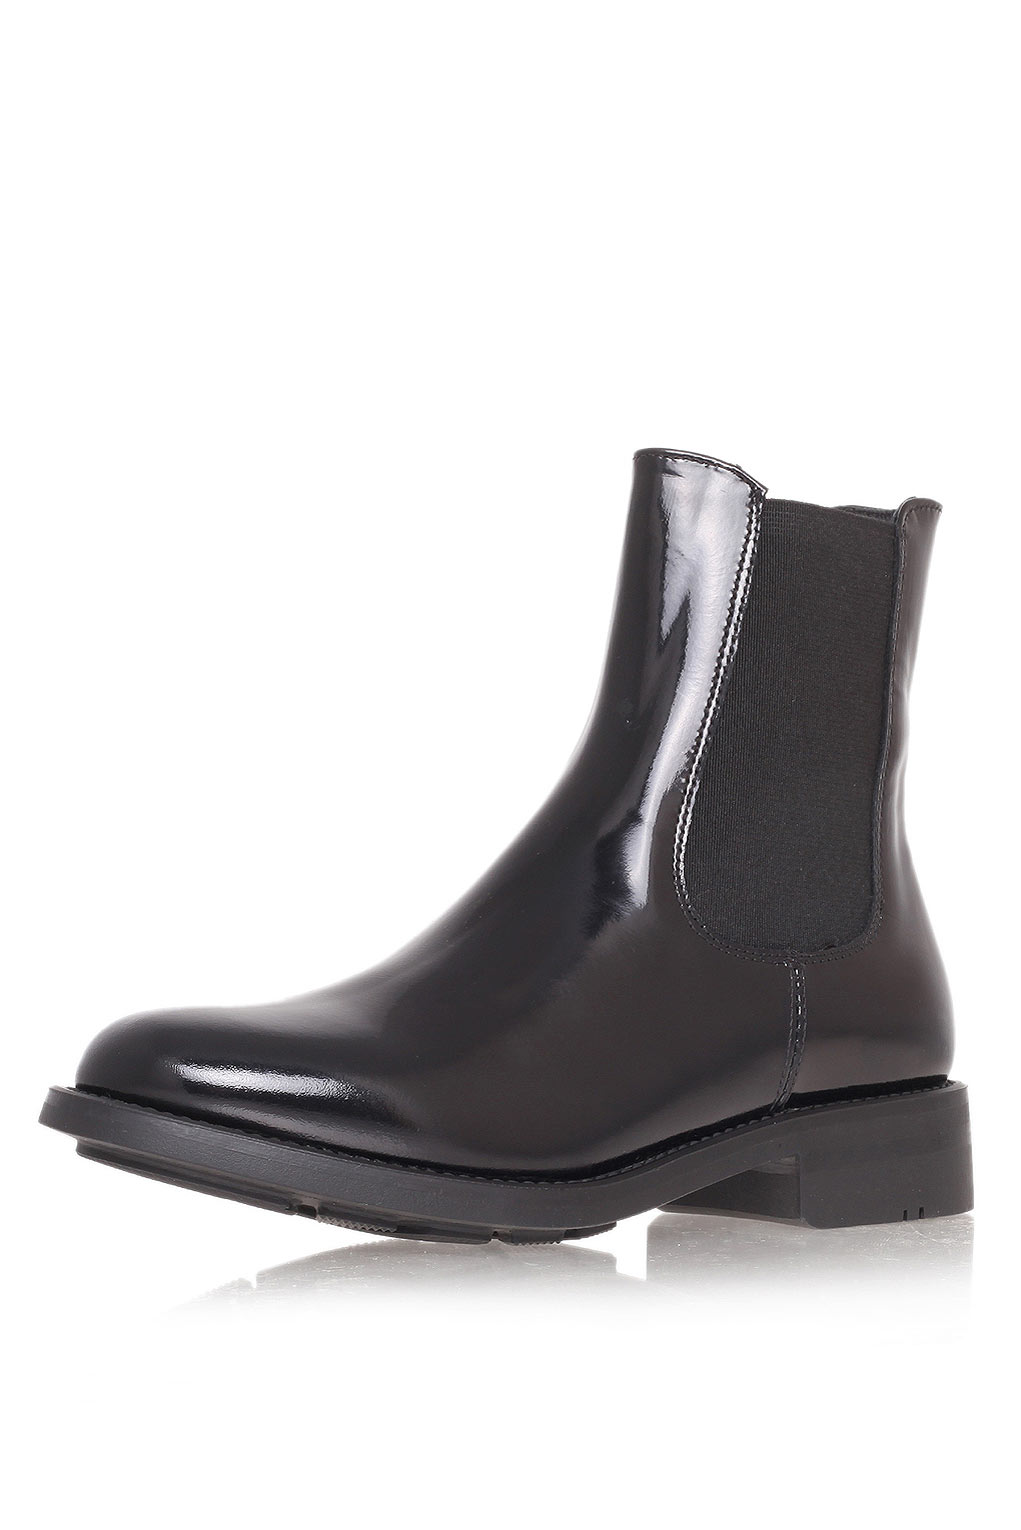 topshop seymour chelsea ankle boots by kurt geiger in